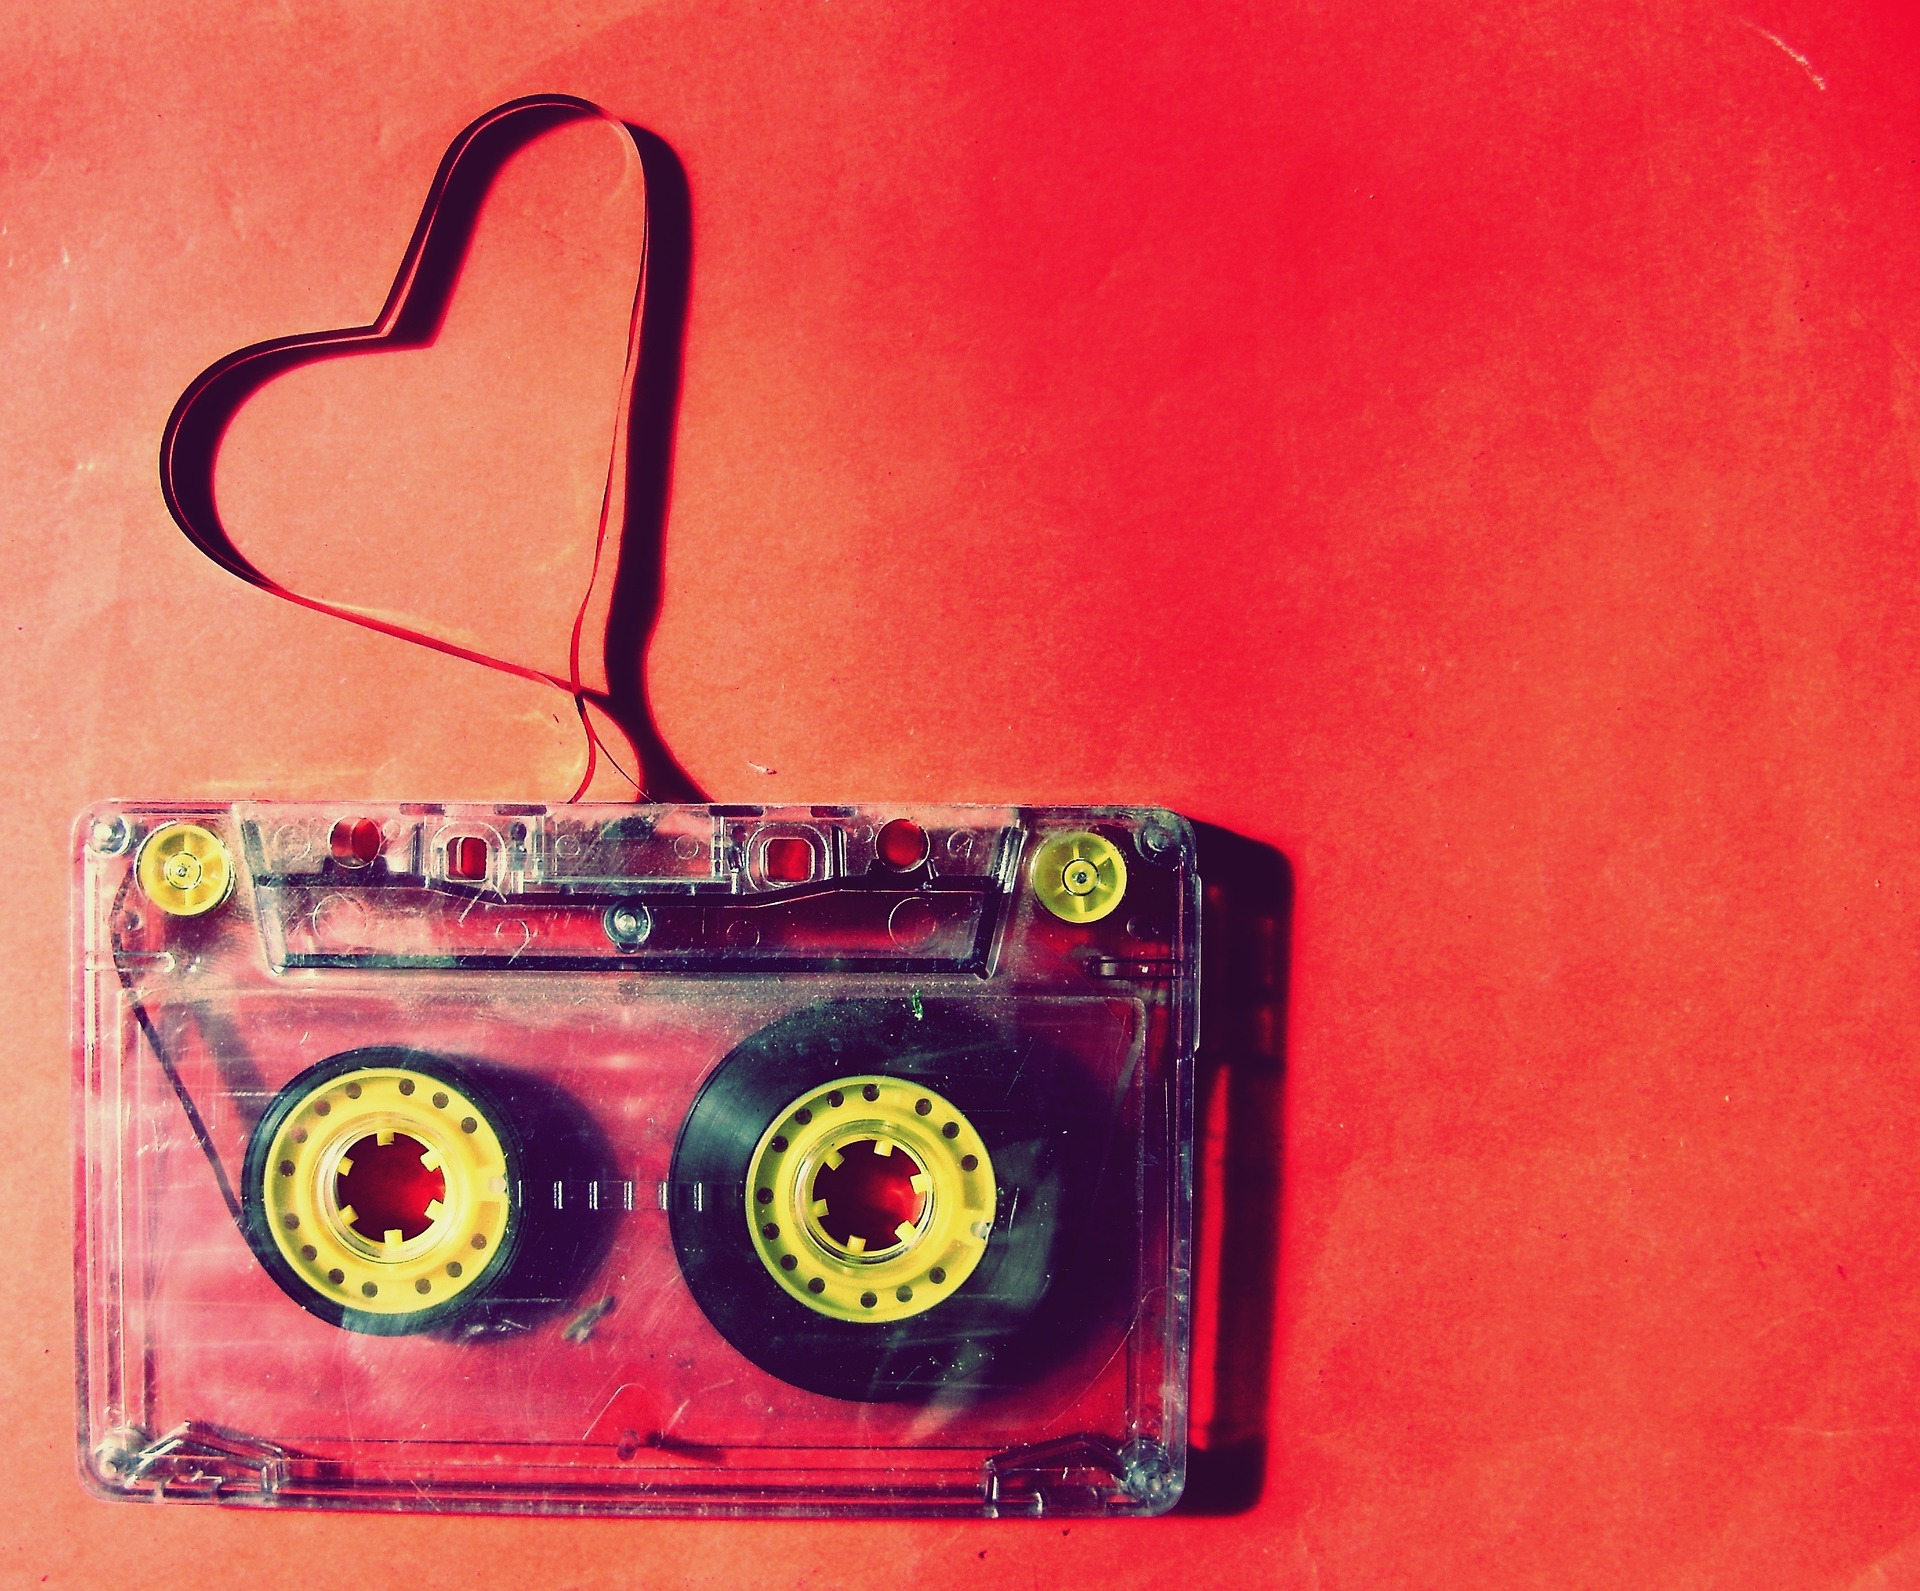 mix-tape-gifts-for-him-valentine's-day_image